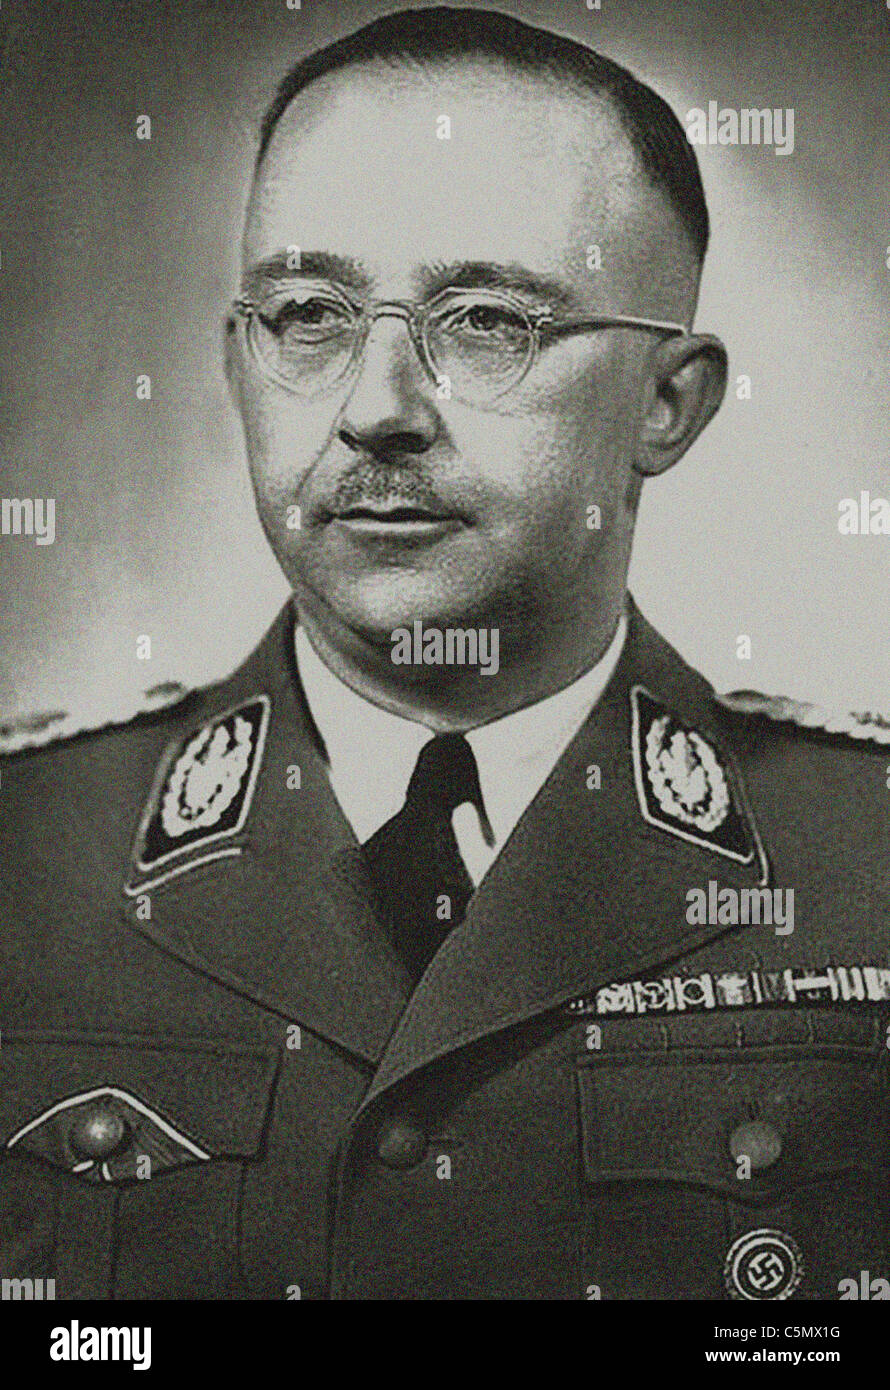 Heinrich Luitpold Himmler was Reichsführer of the SS, a military commander, and a leading member of the Nazi - Stock Image